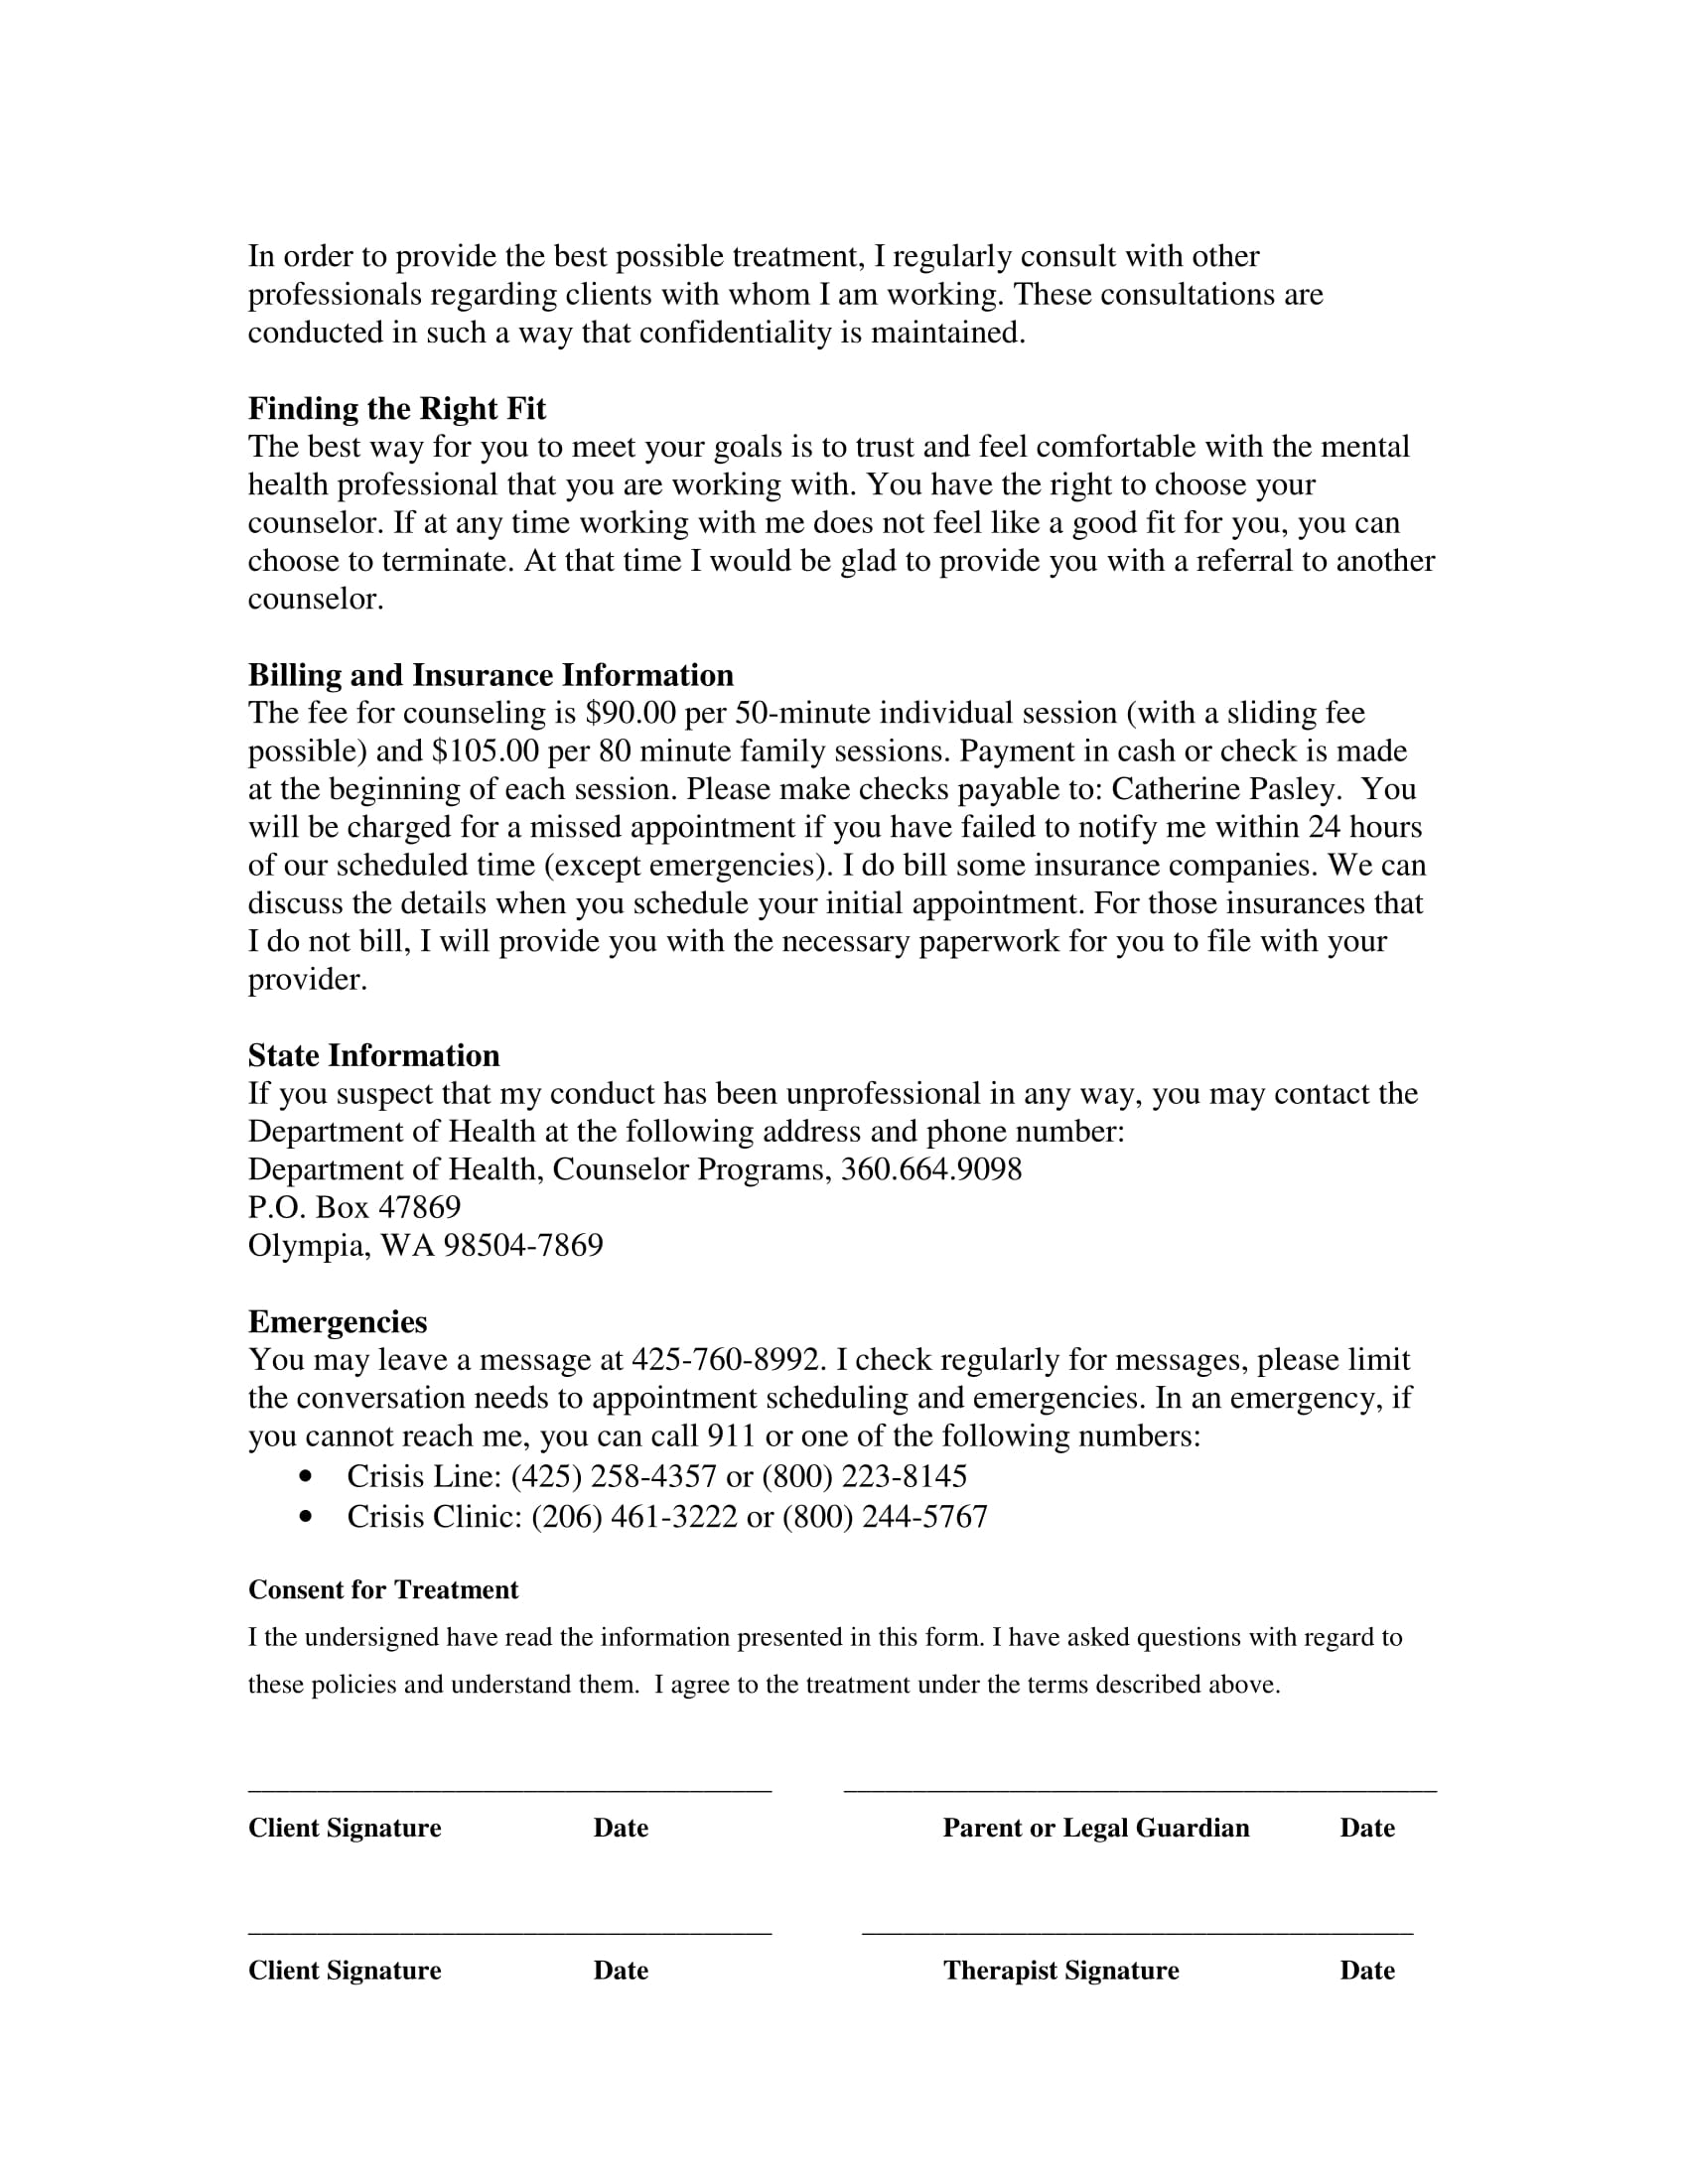 FREE 14+ Counseling Statement Form Samples | PDF